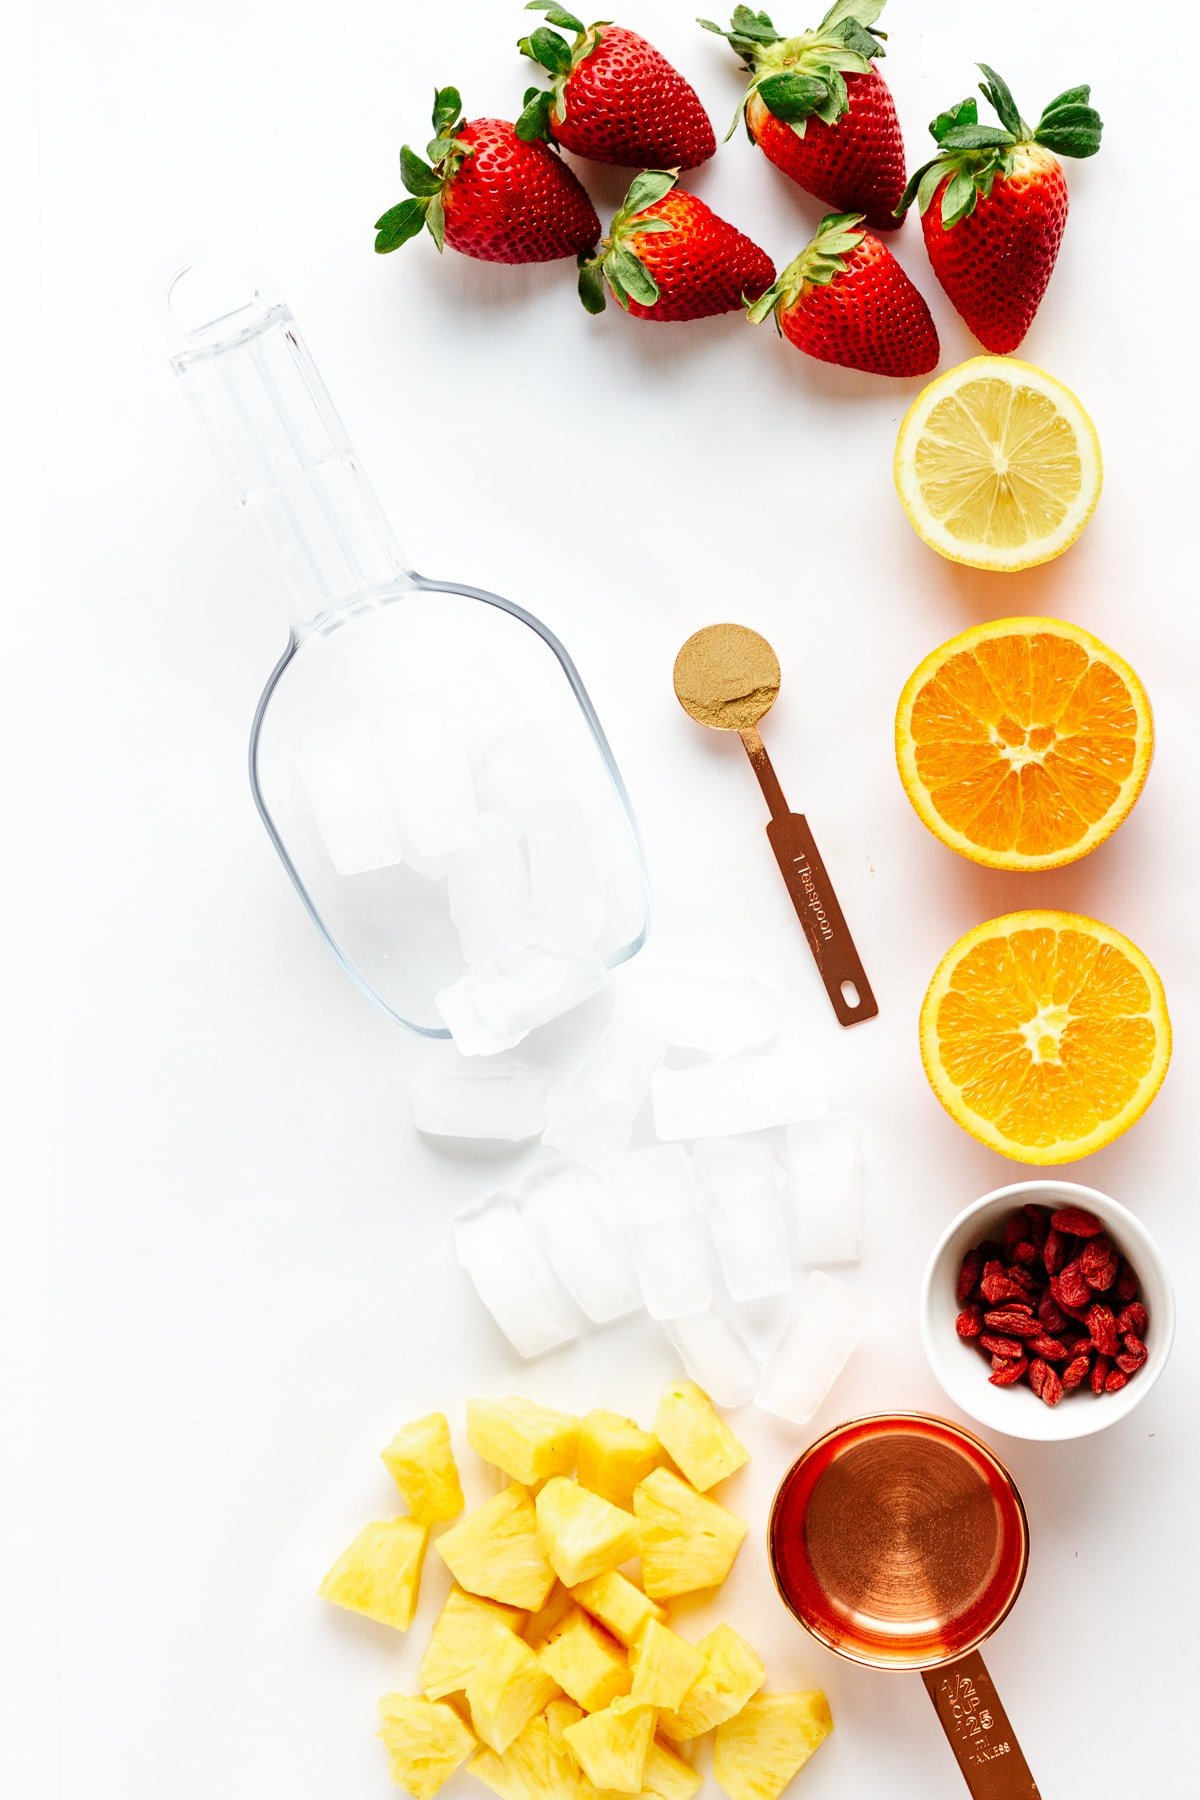 Overhead photo of all the ingredients needed to make the Vitamin C Powerhouse Smoothie recipe.